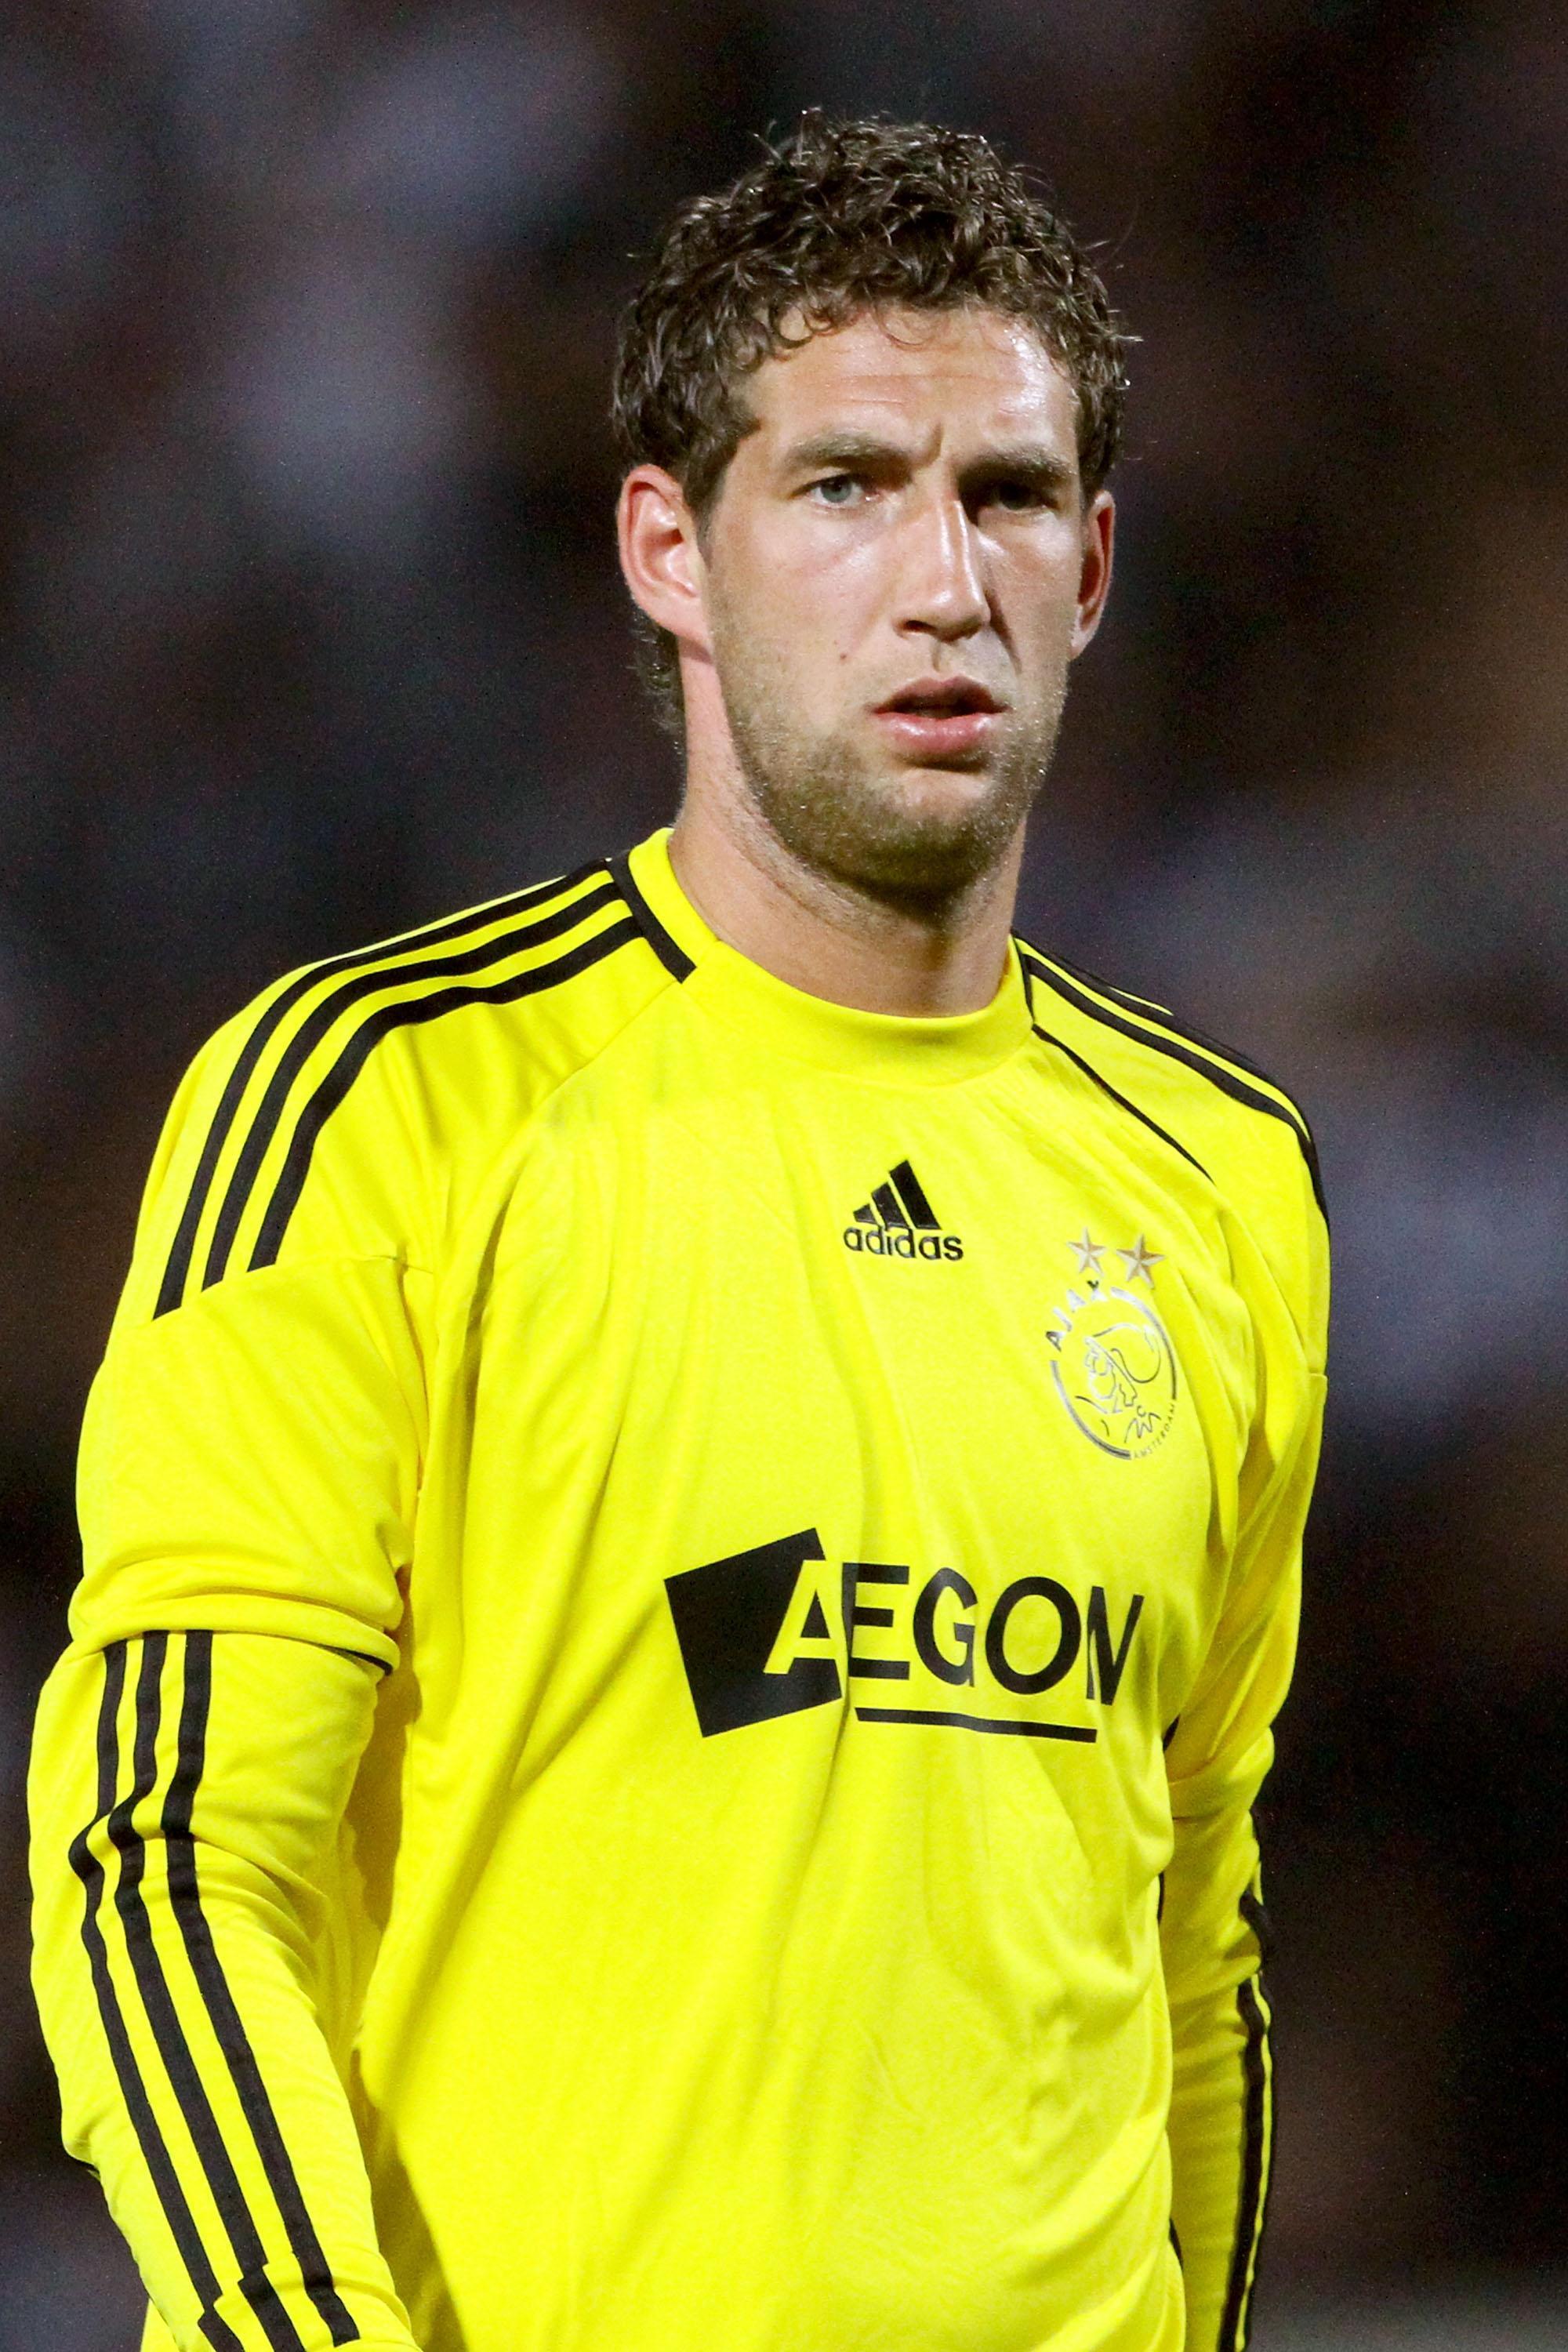 THESSALONIKI, GREECE - AUGUST 04:  Maarten Stekelenburg of Ajax during the Uefa Champions League qualifying match between Paok and Ajax at Toumba Stadium on August 4, 2010 in Thessaloniki, Greece.  (Photo by Getty Images/Getty Images)